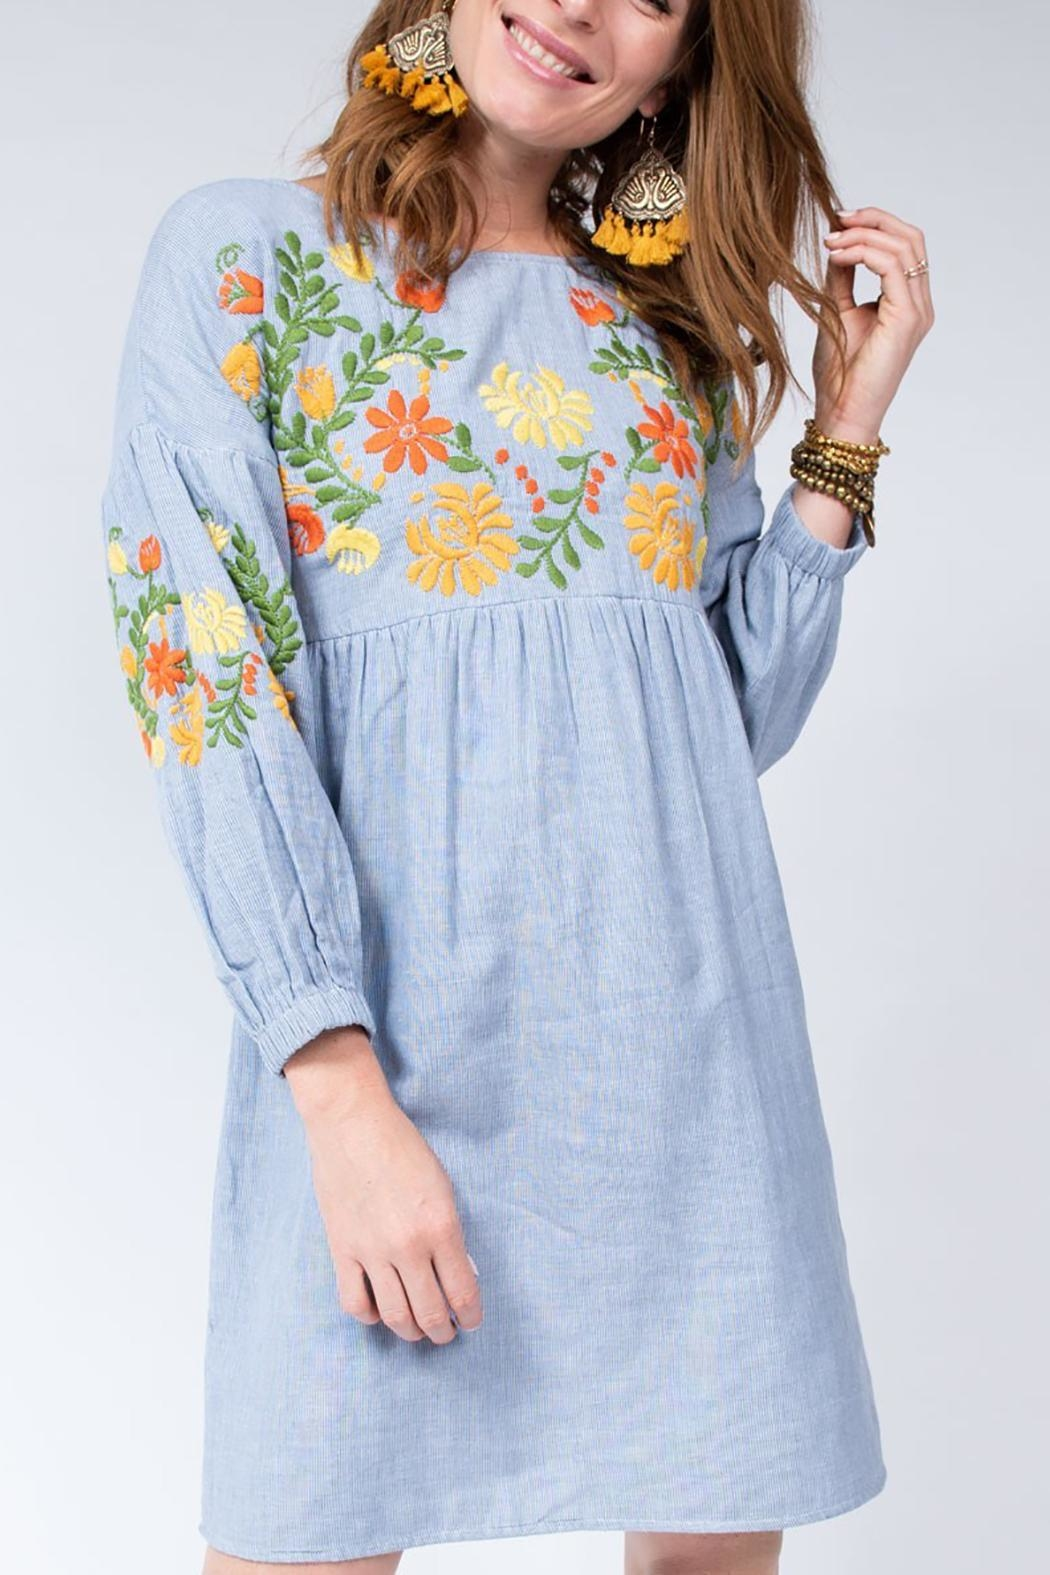 Ivy Jane / Uncle Frank  Floral Embroidered Dress - Main Image